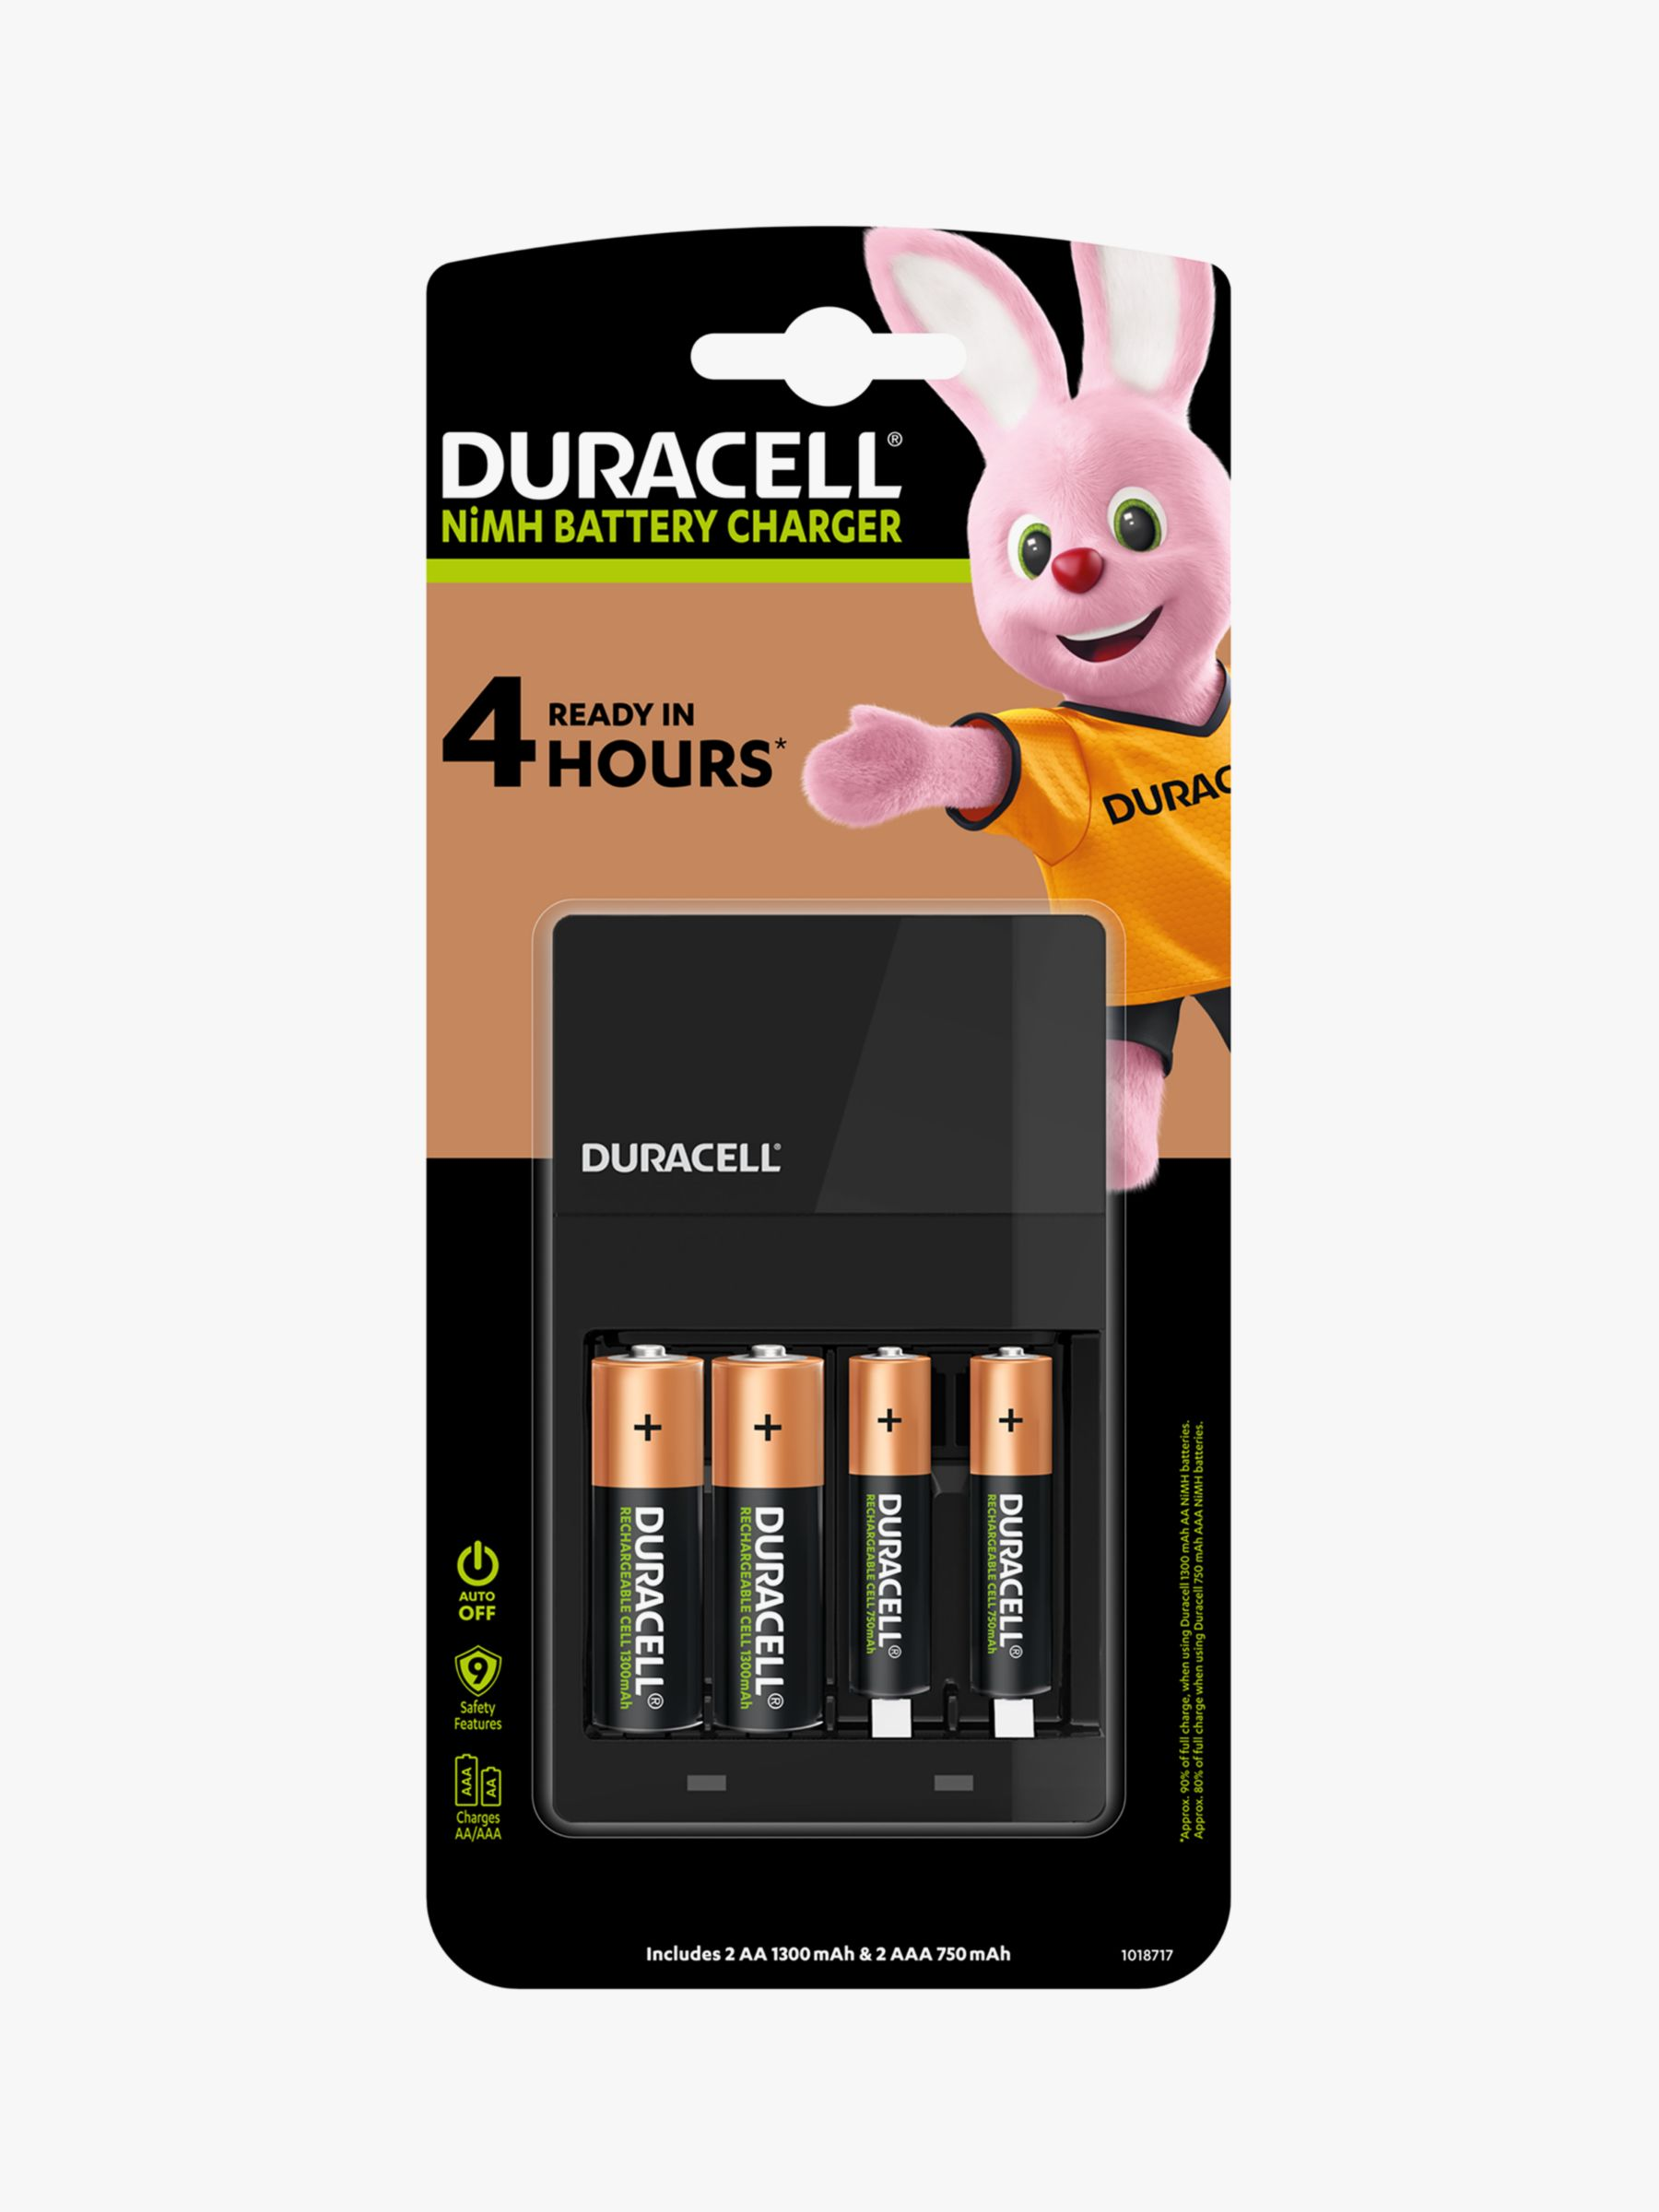 Duracell Duracell Hi-Speed Value Charger with 2 AA and 2 AAA Rechargeable Batteries